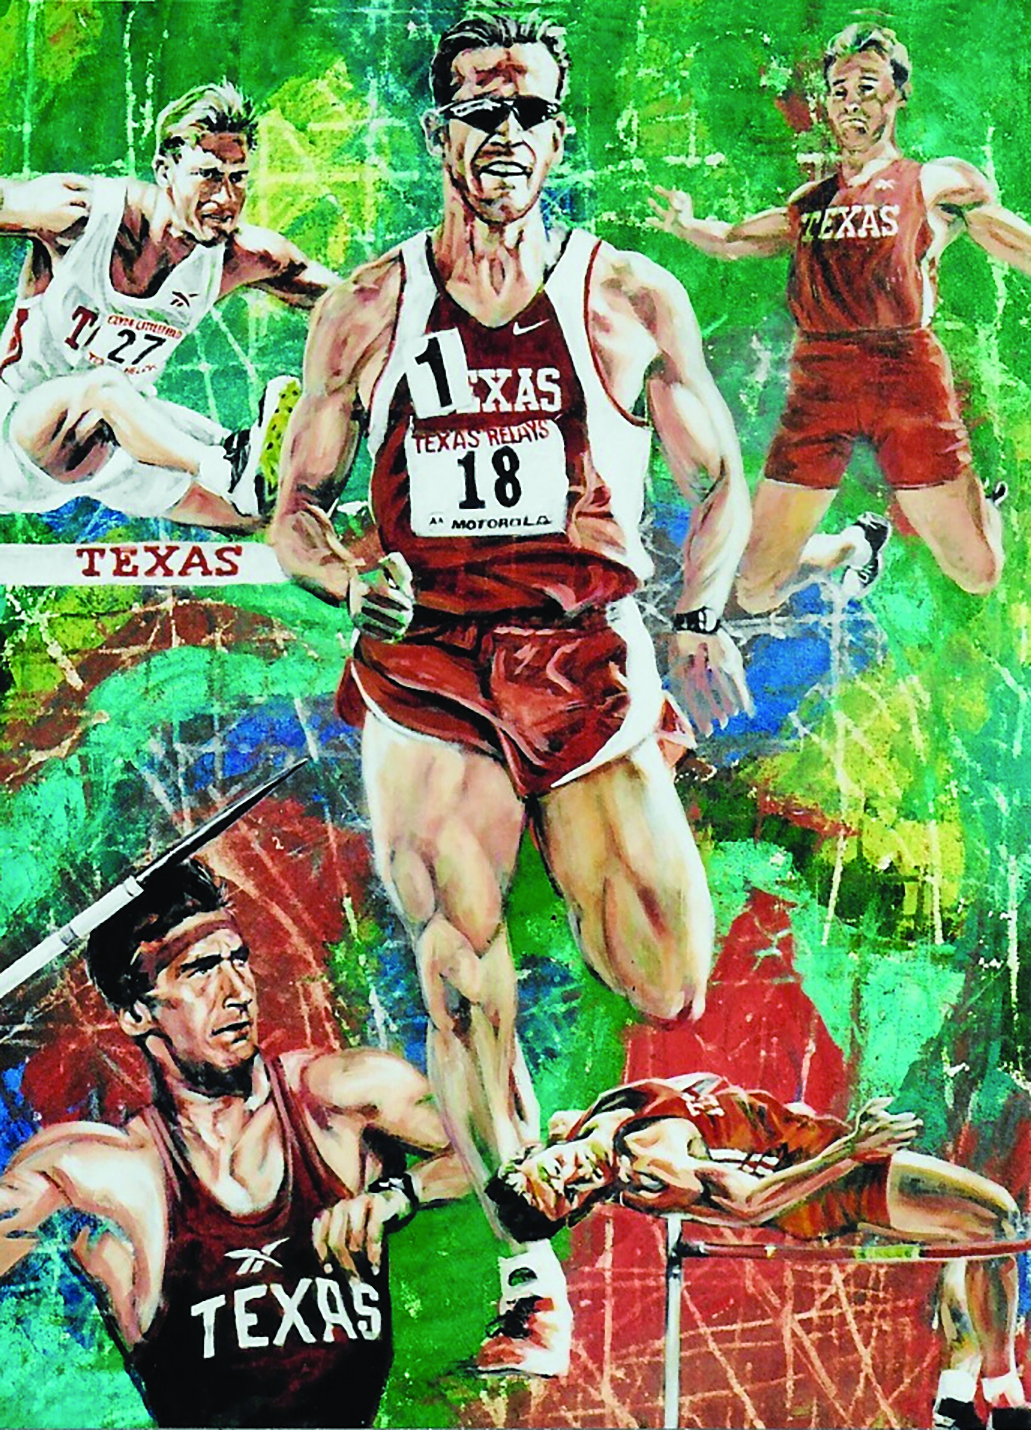 Barret Havran '98 participated as a decathlete at The University of Texas at Austin.